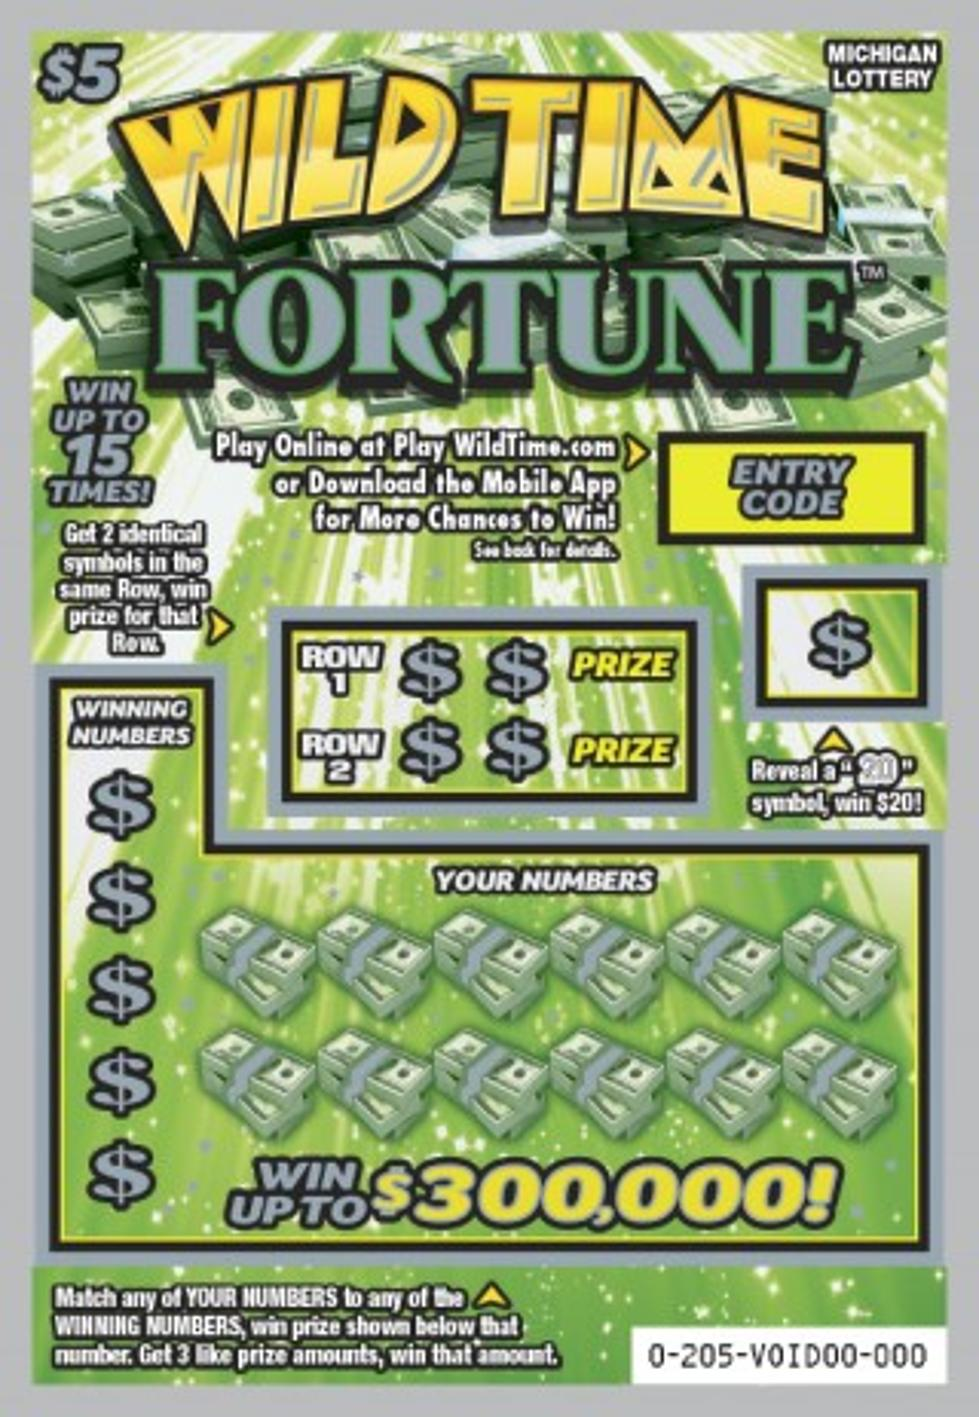 Score Wild Time Fortune Lottery Tickets From MI  Lottery